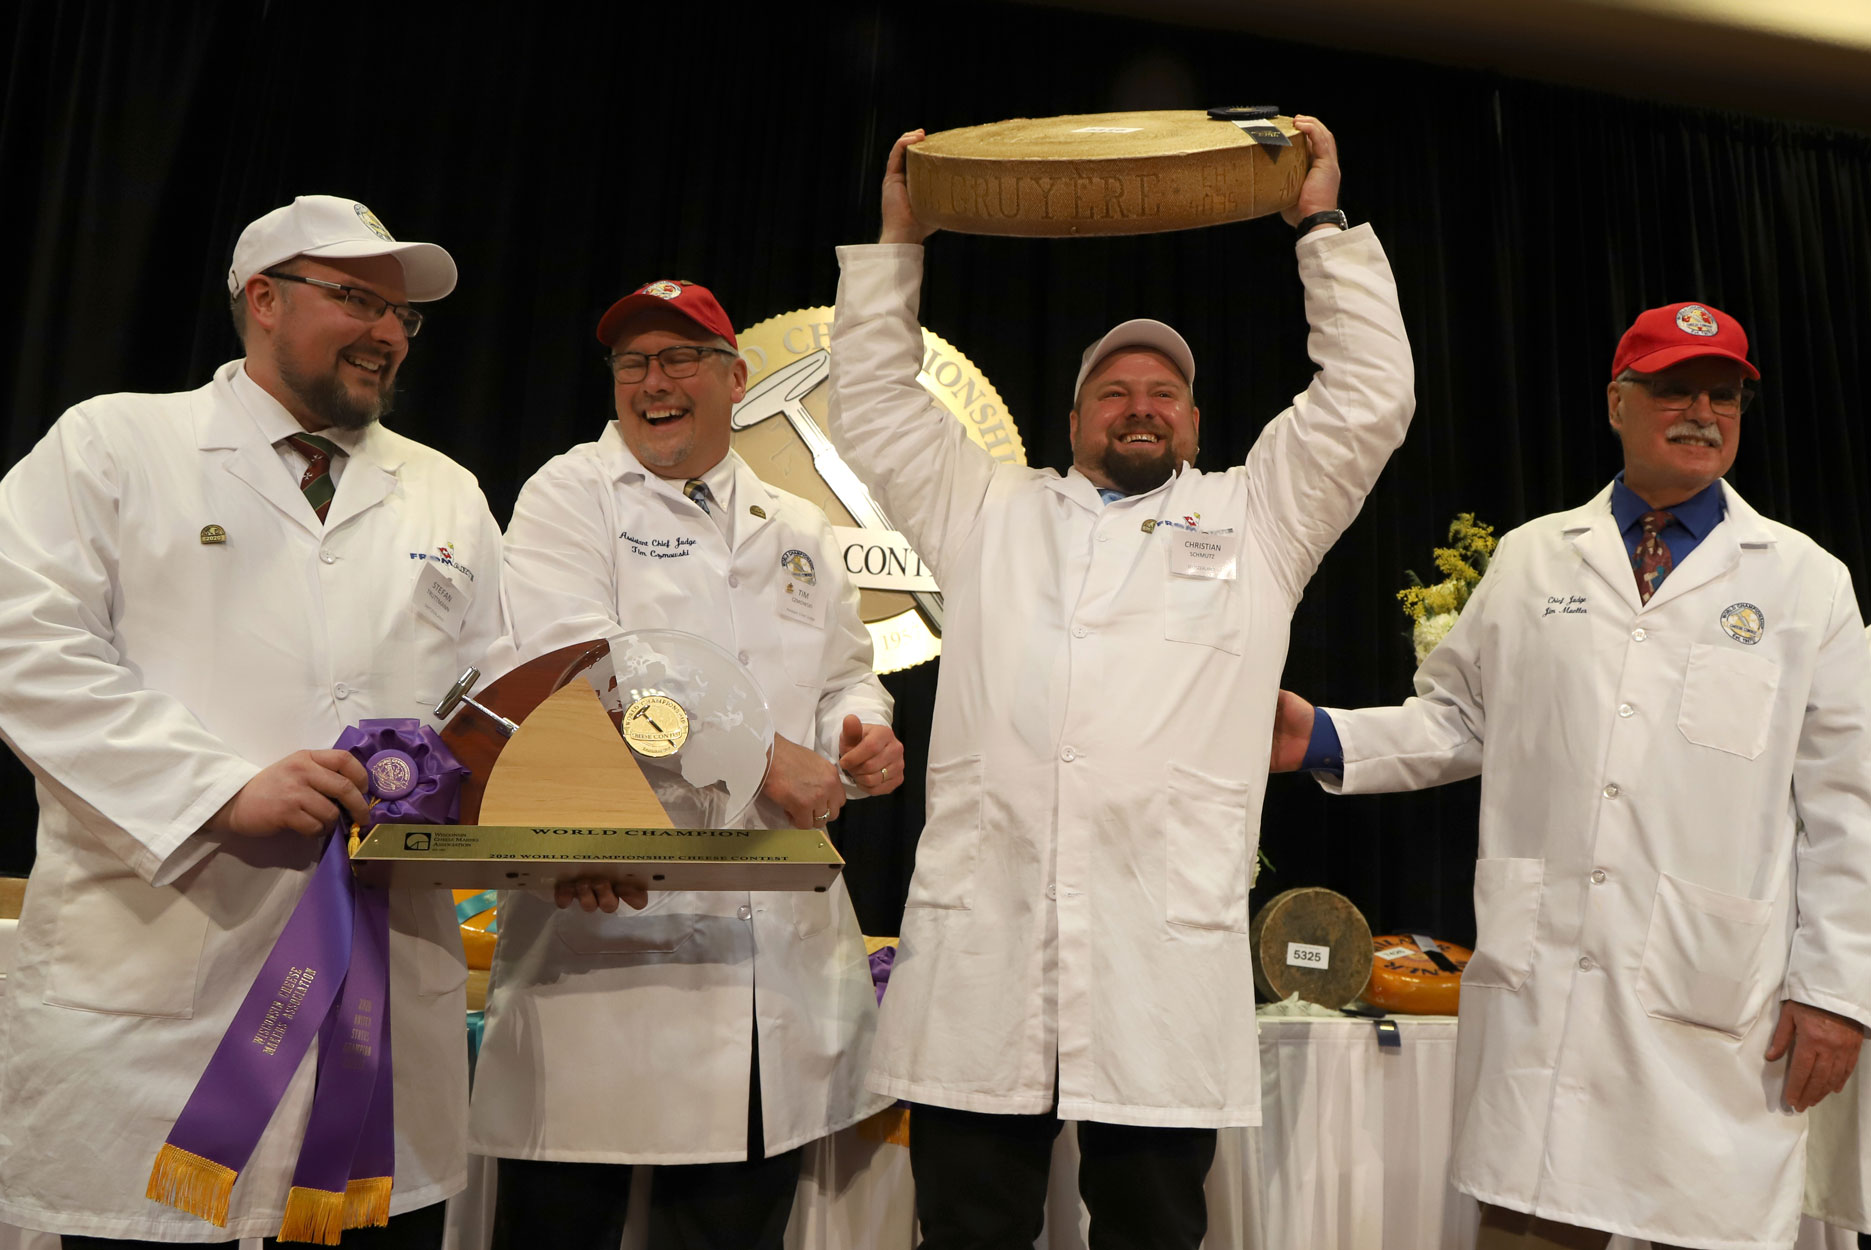 World Championship Cheese Contest Winner